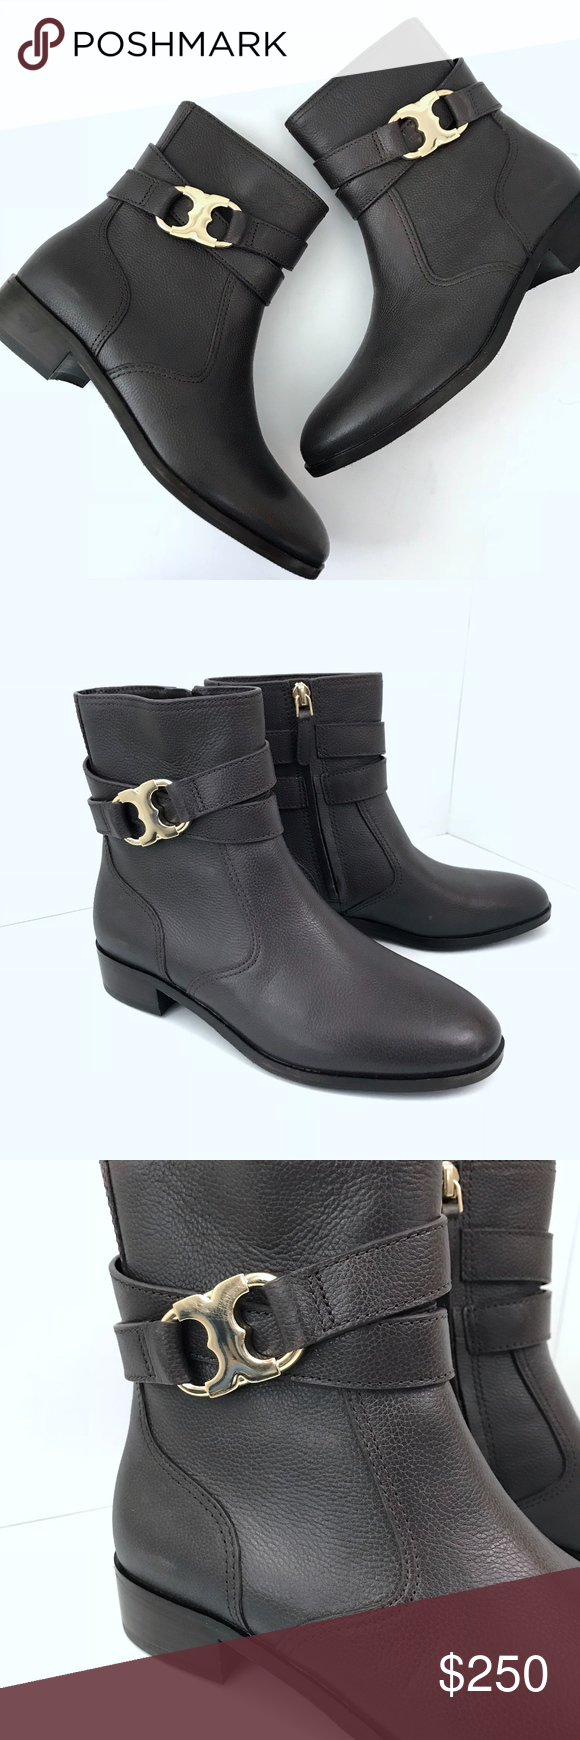 6345a22b286f Tory Burch Gemini Link Ankle Booties Brown Sz 6.5 Tory Burch Gemini Link  Ankle Booties Brown